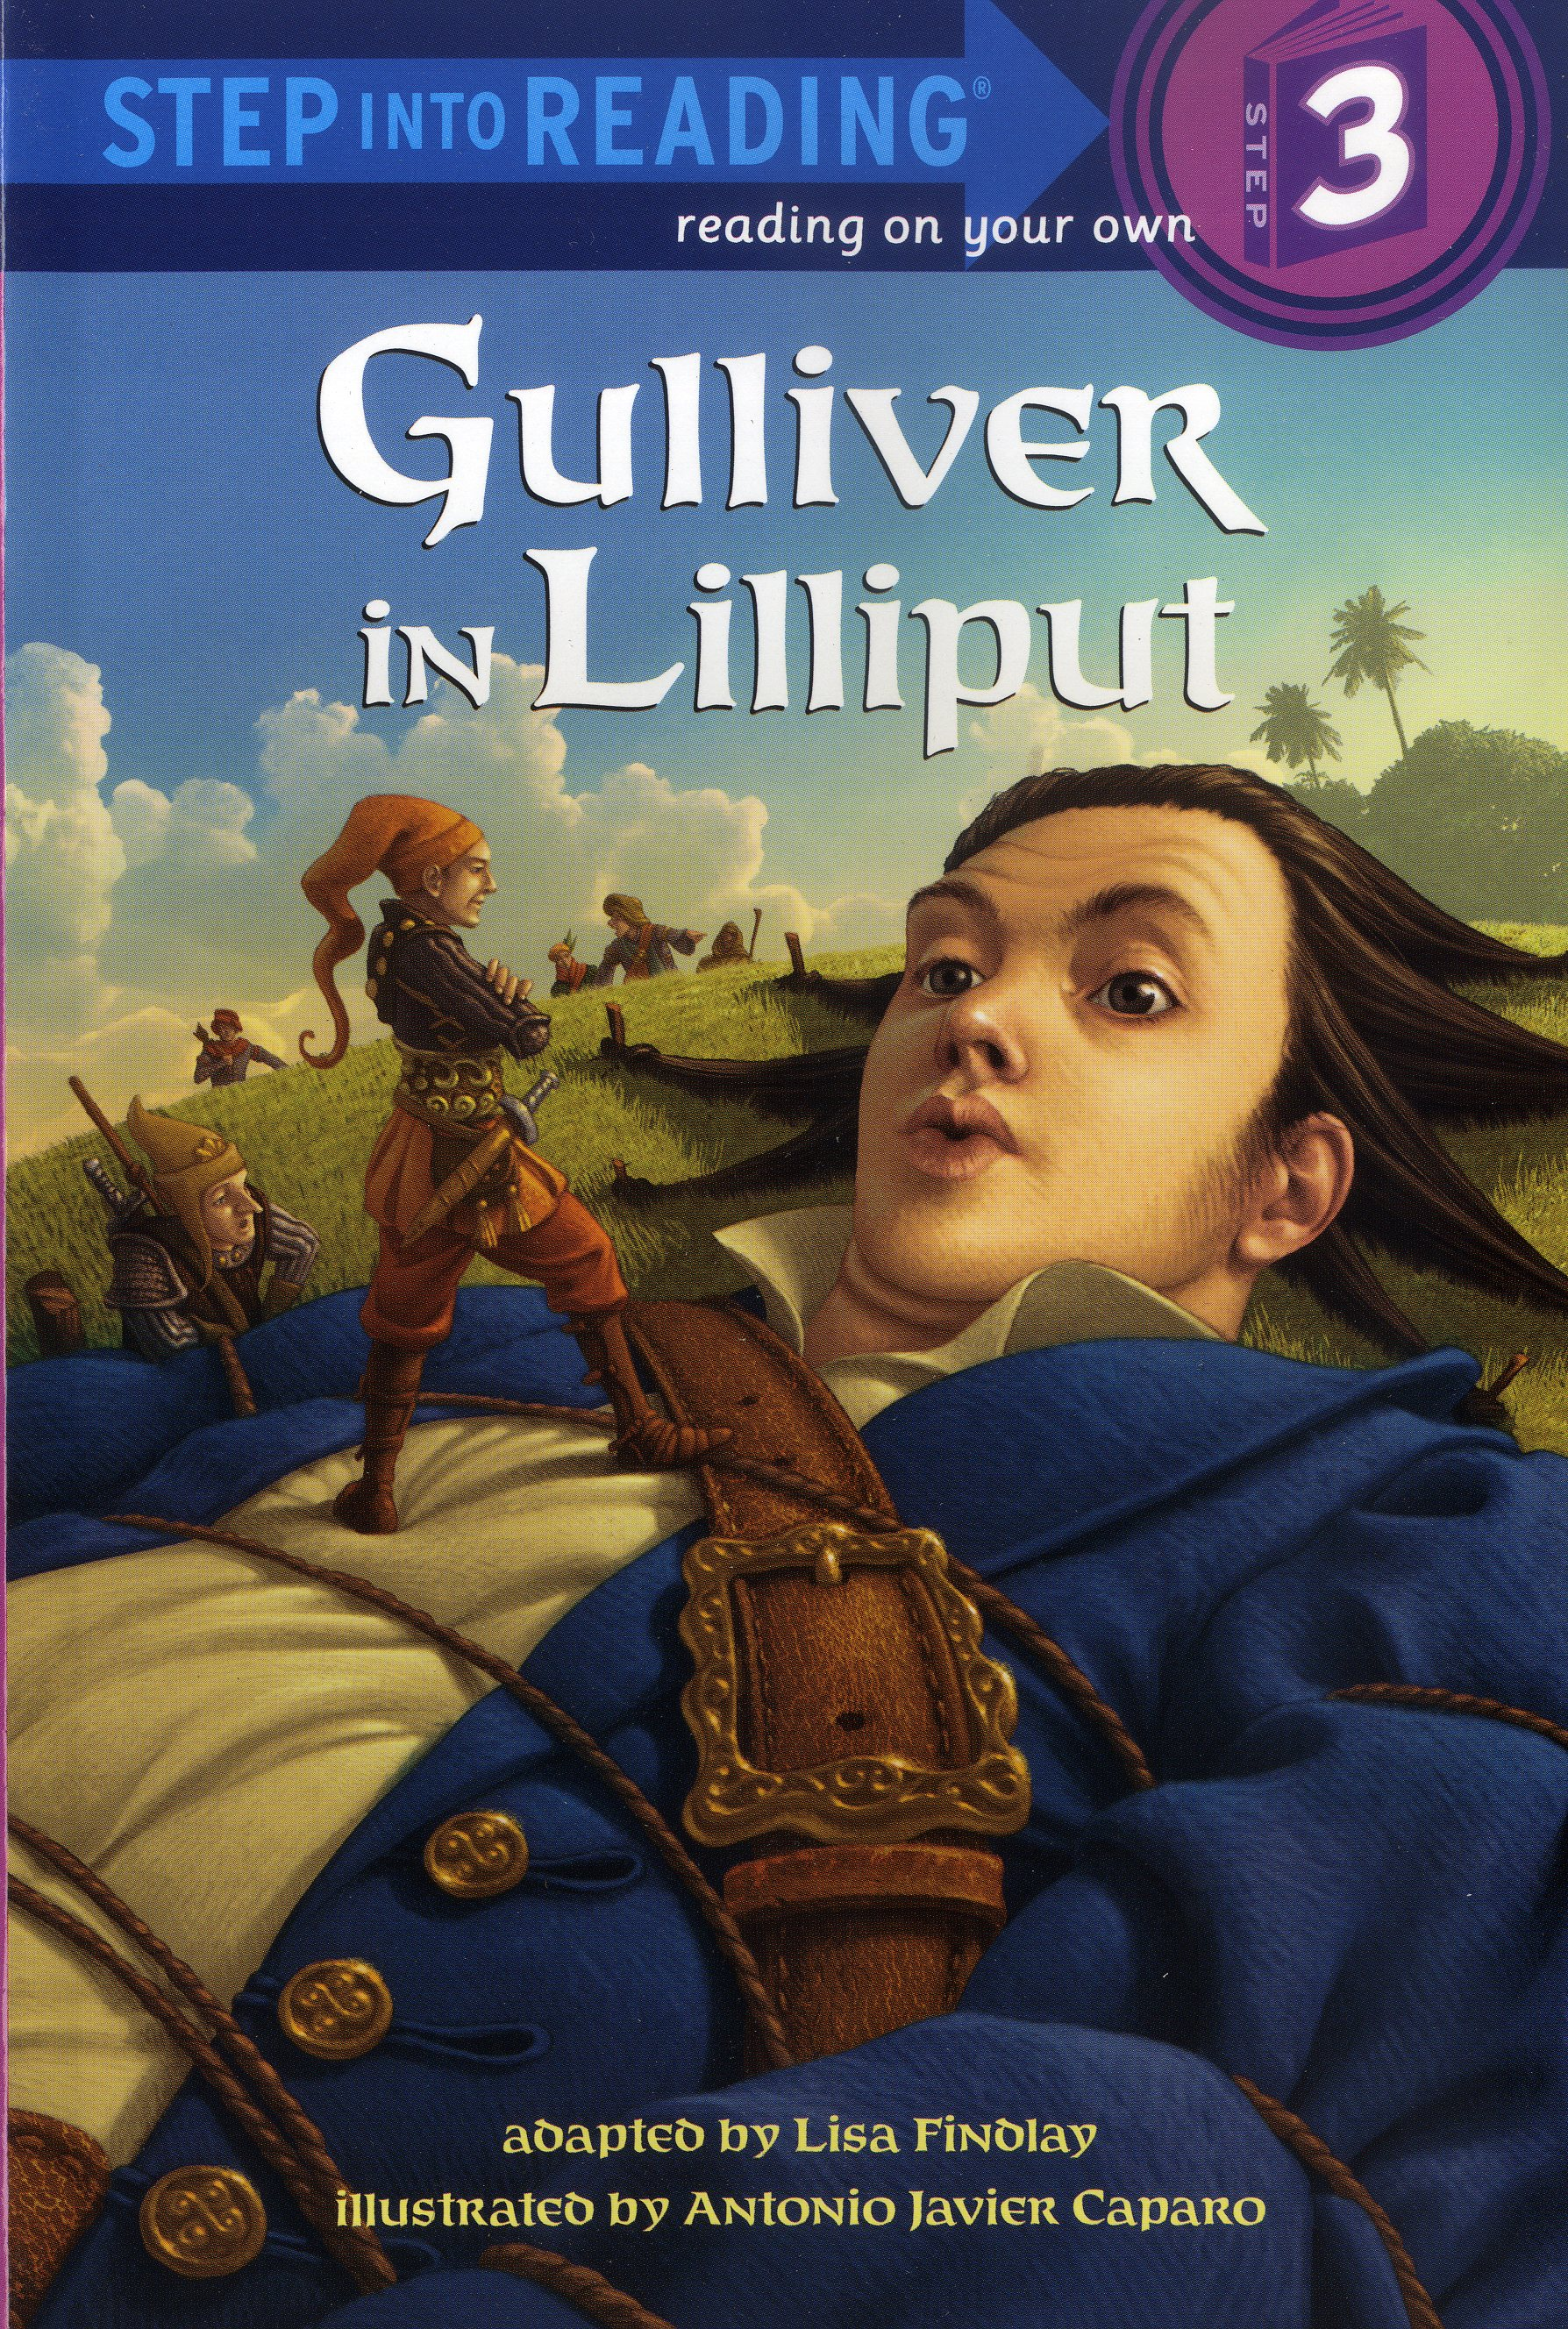 Thumnail : Step into Reading 3 Gulliver in Lilliput (New)